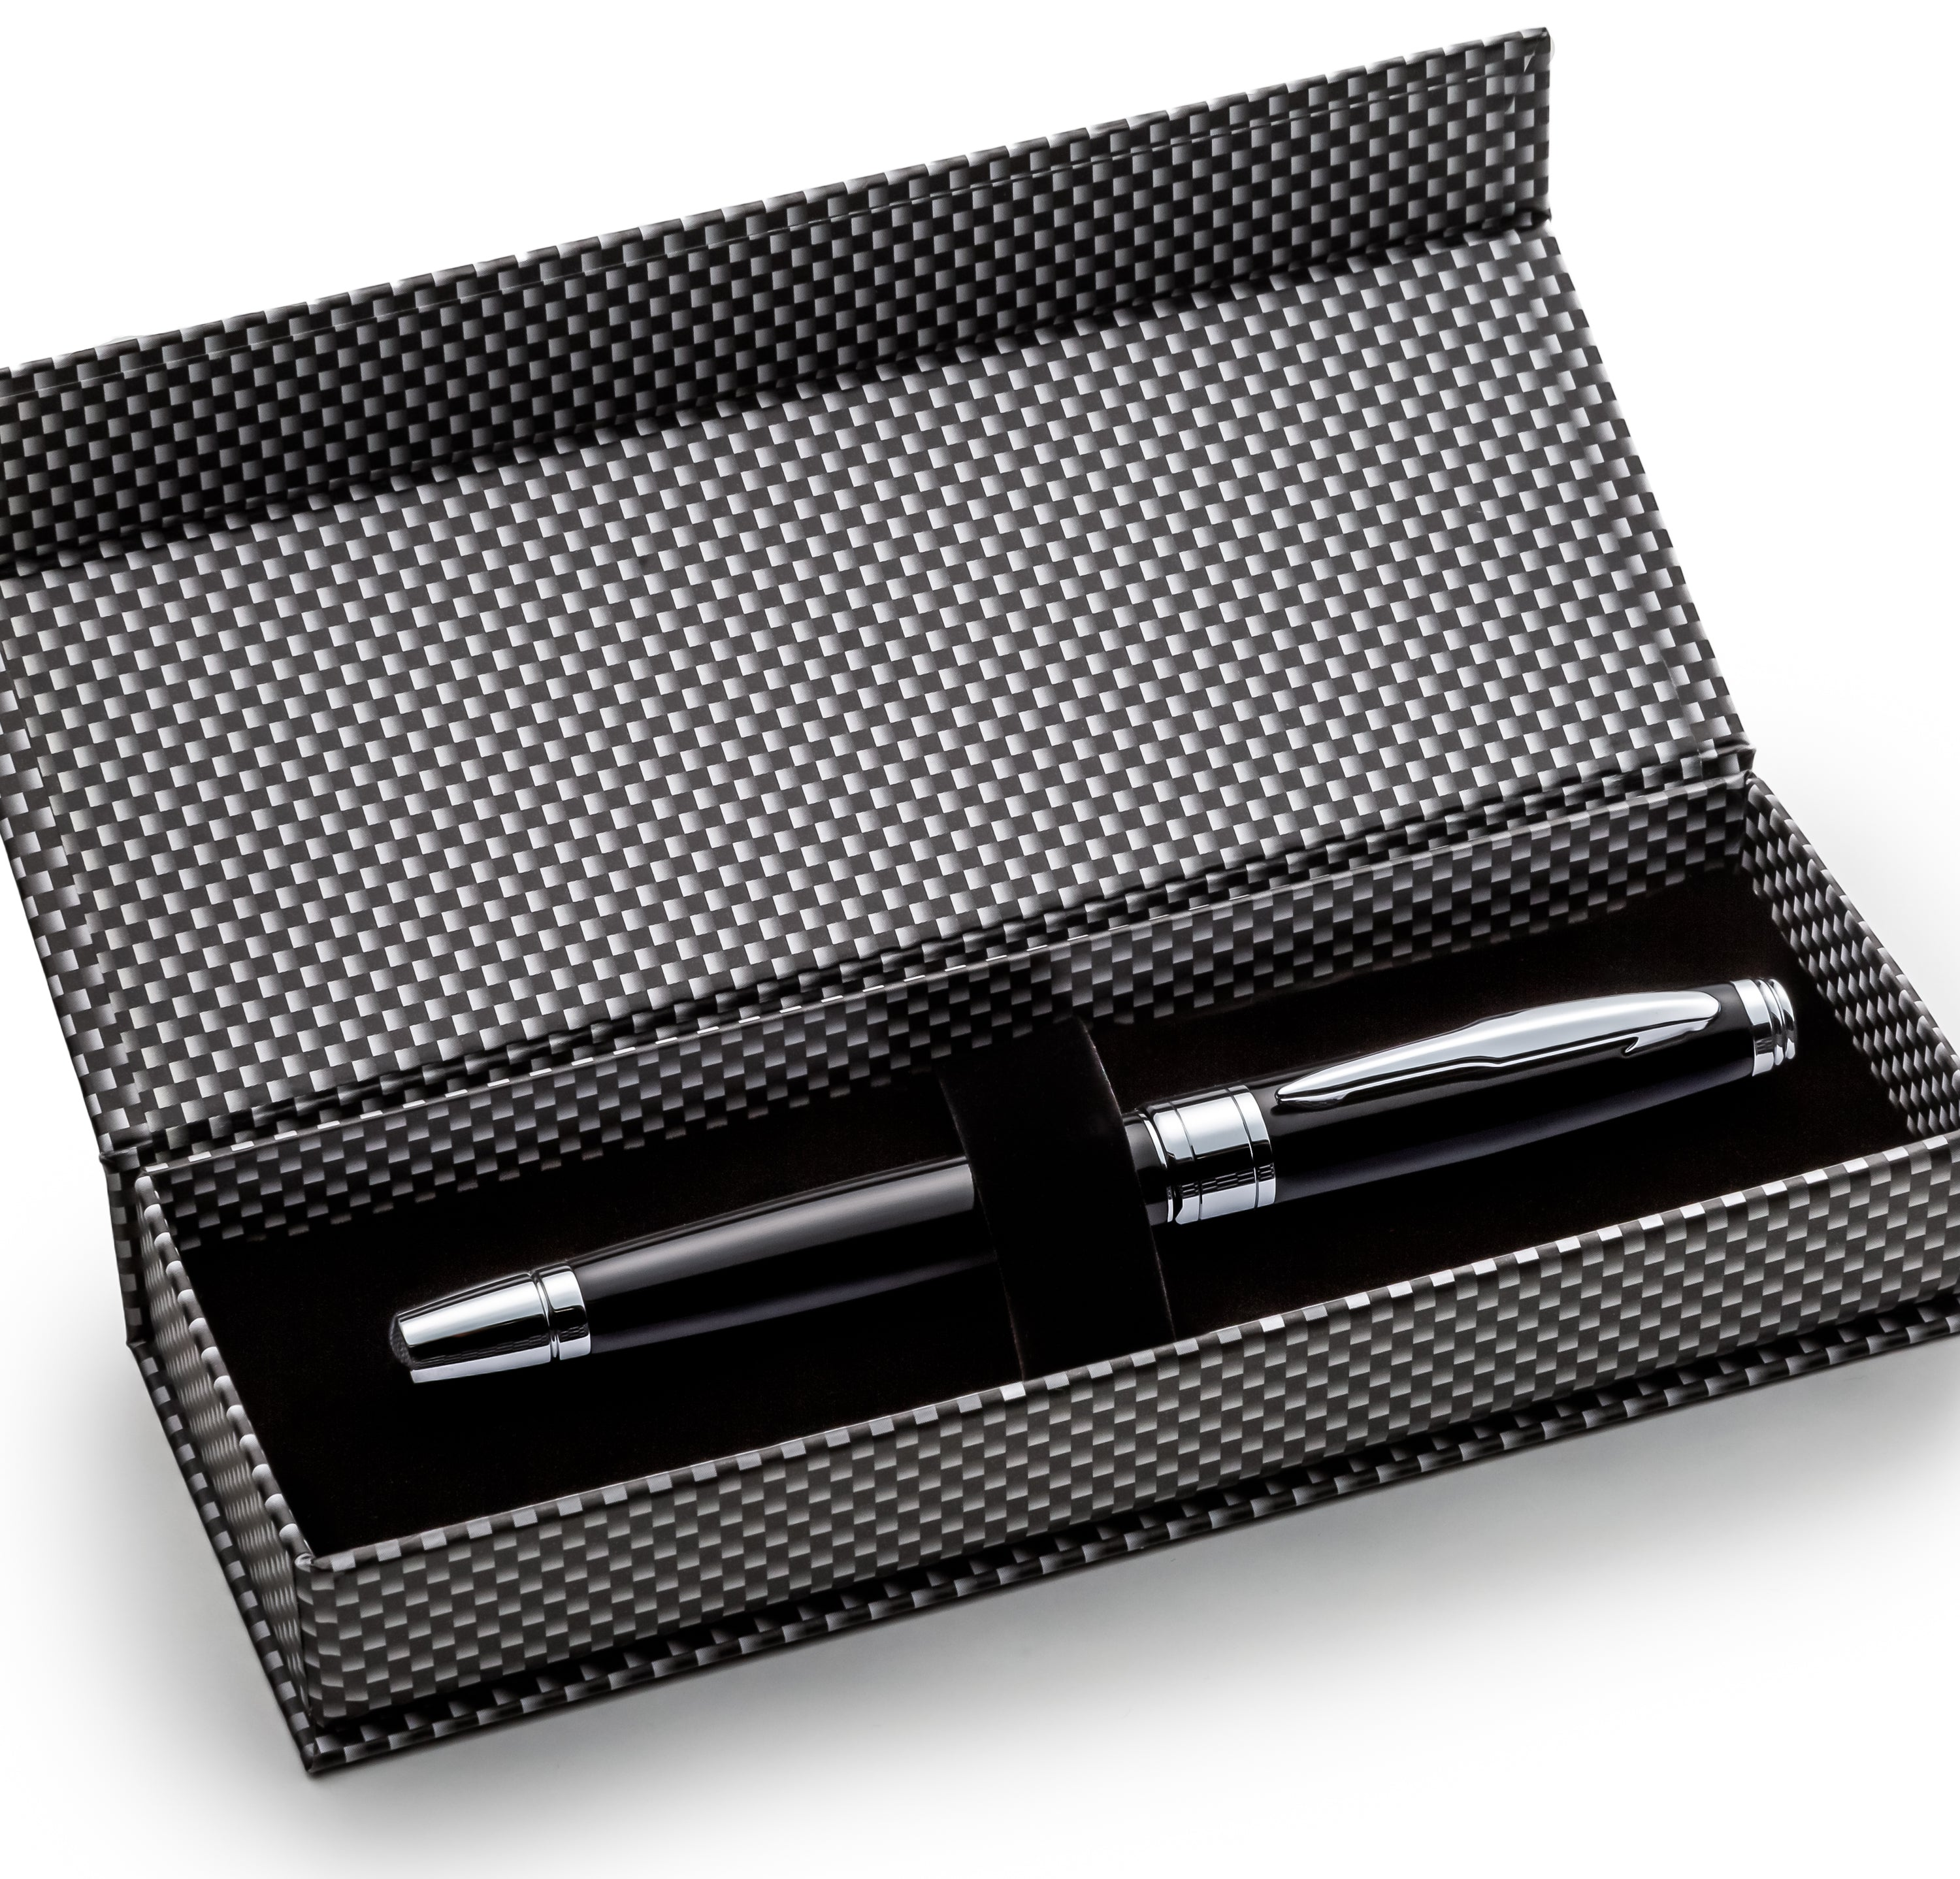 Black on Silver Metal Rollerball Pen Set - W/ 0.5mm Schneider Ink Refill & Gift Box Case